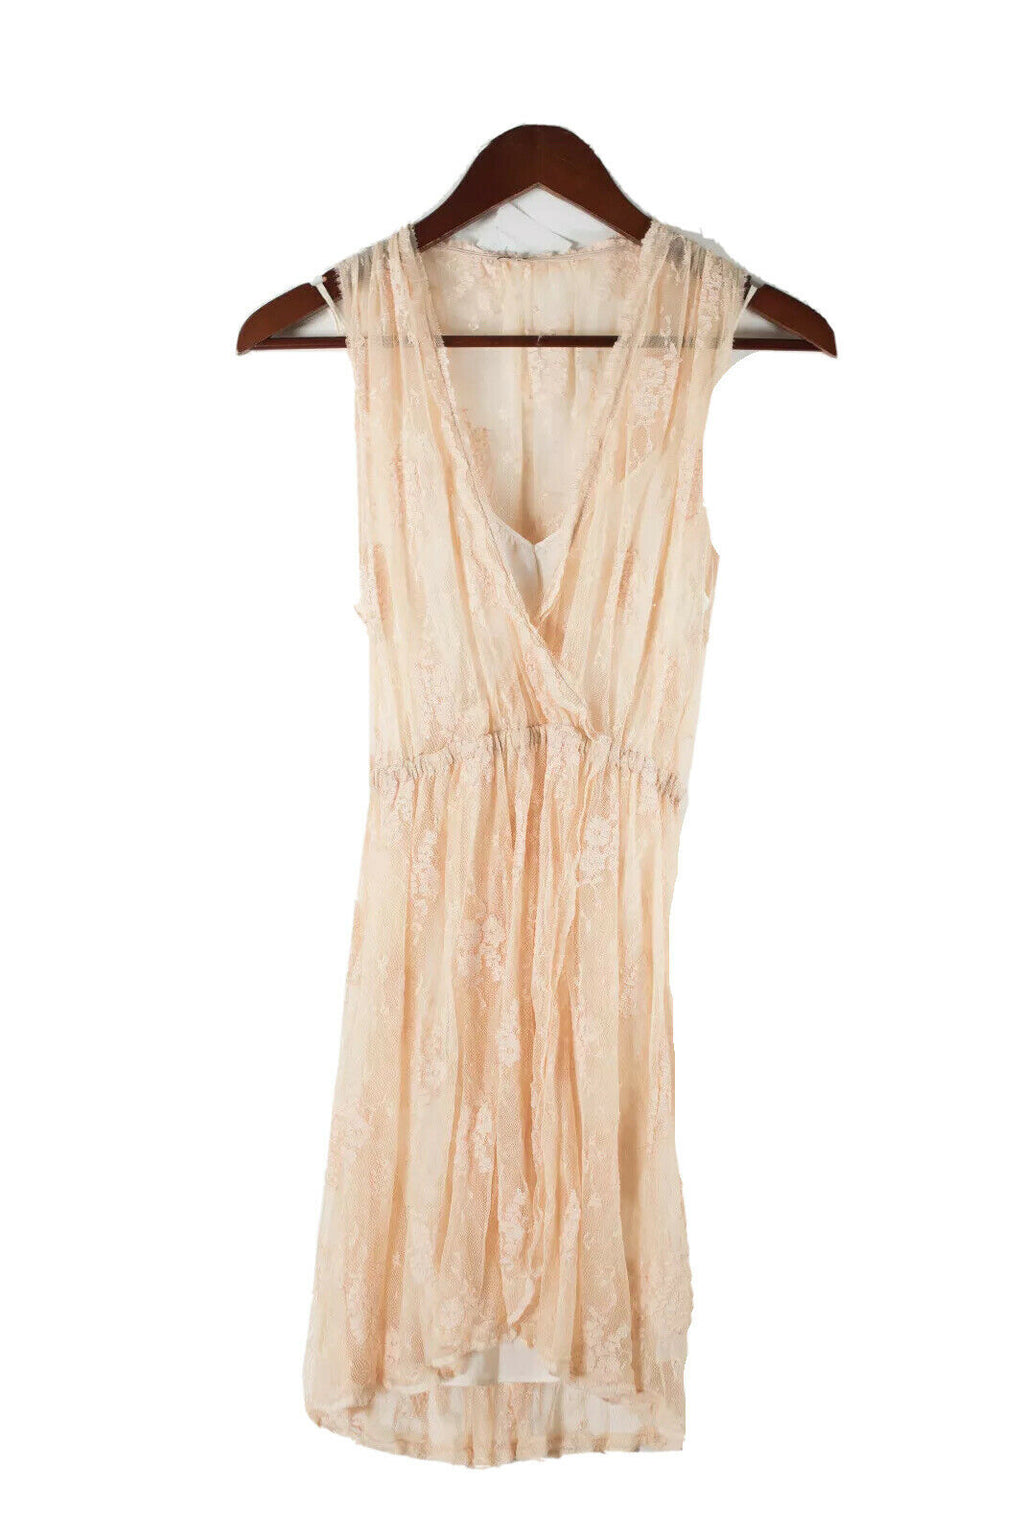 Wilfred Aritzia Womens XXS Beige Dress Slip Dress